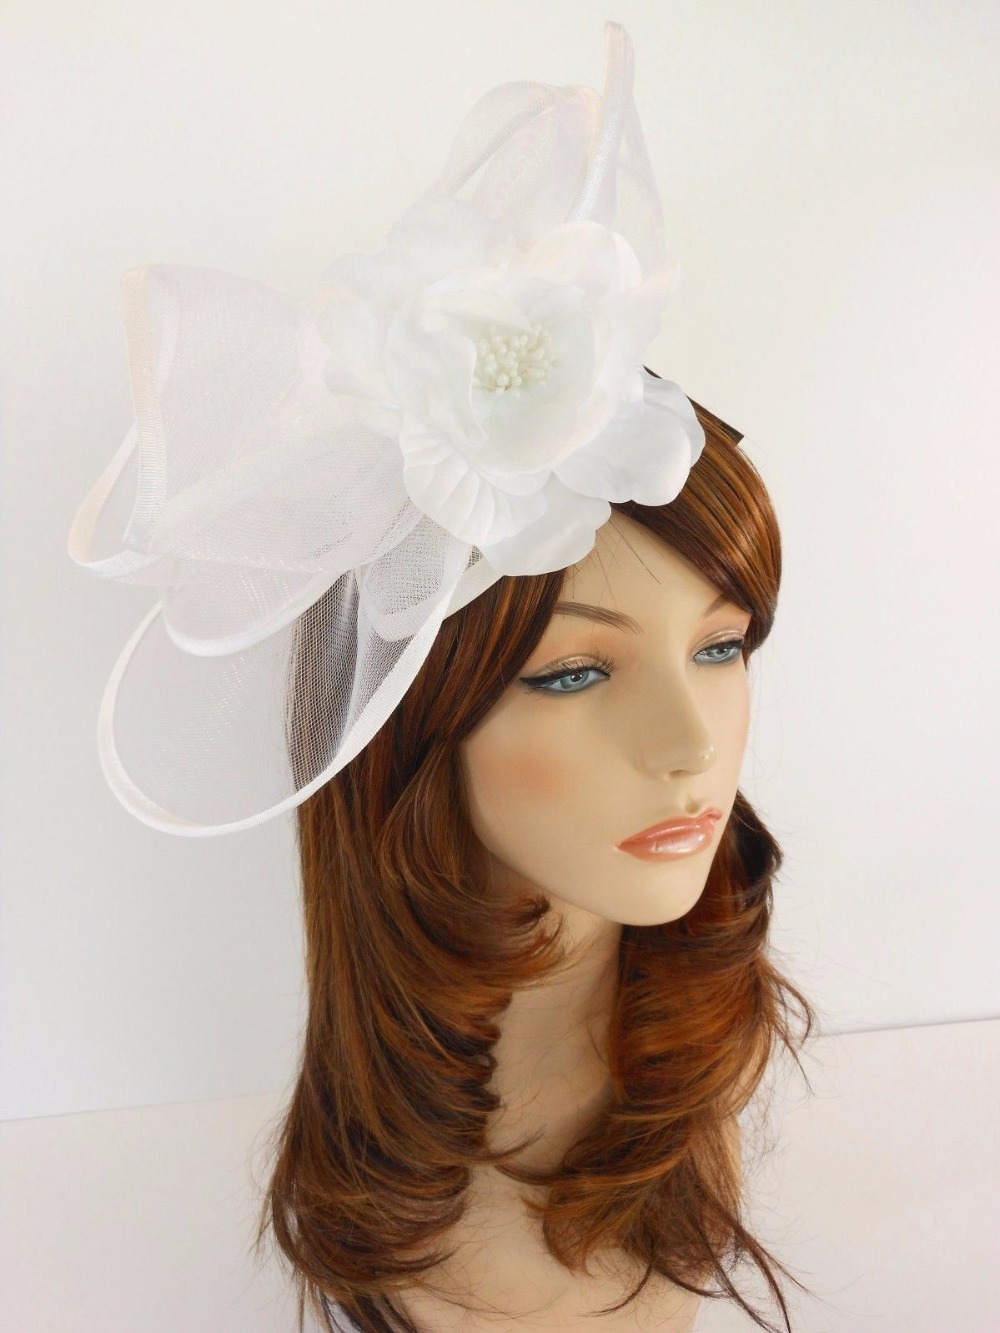 New Church Derby Wedding Cocaktail Party Poly Fascinator Dress Hat w Headband FS-06 White(China (Mainland))